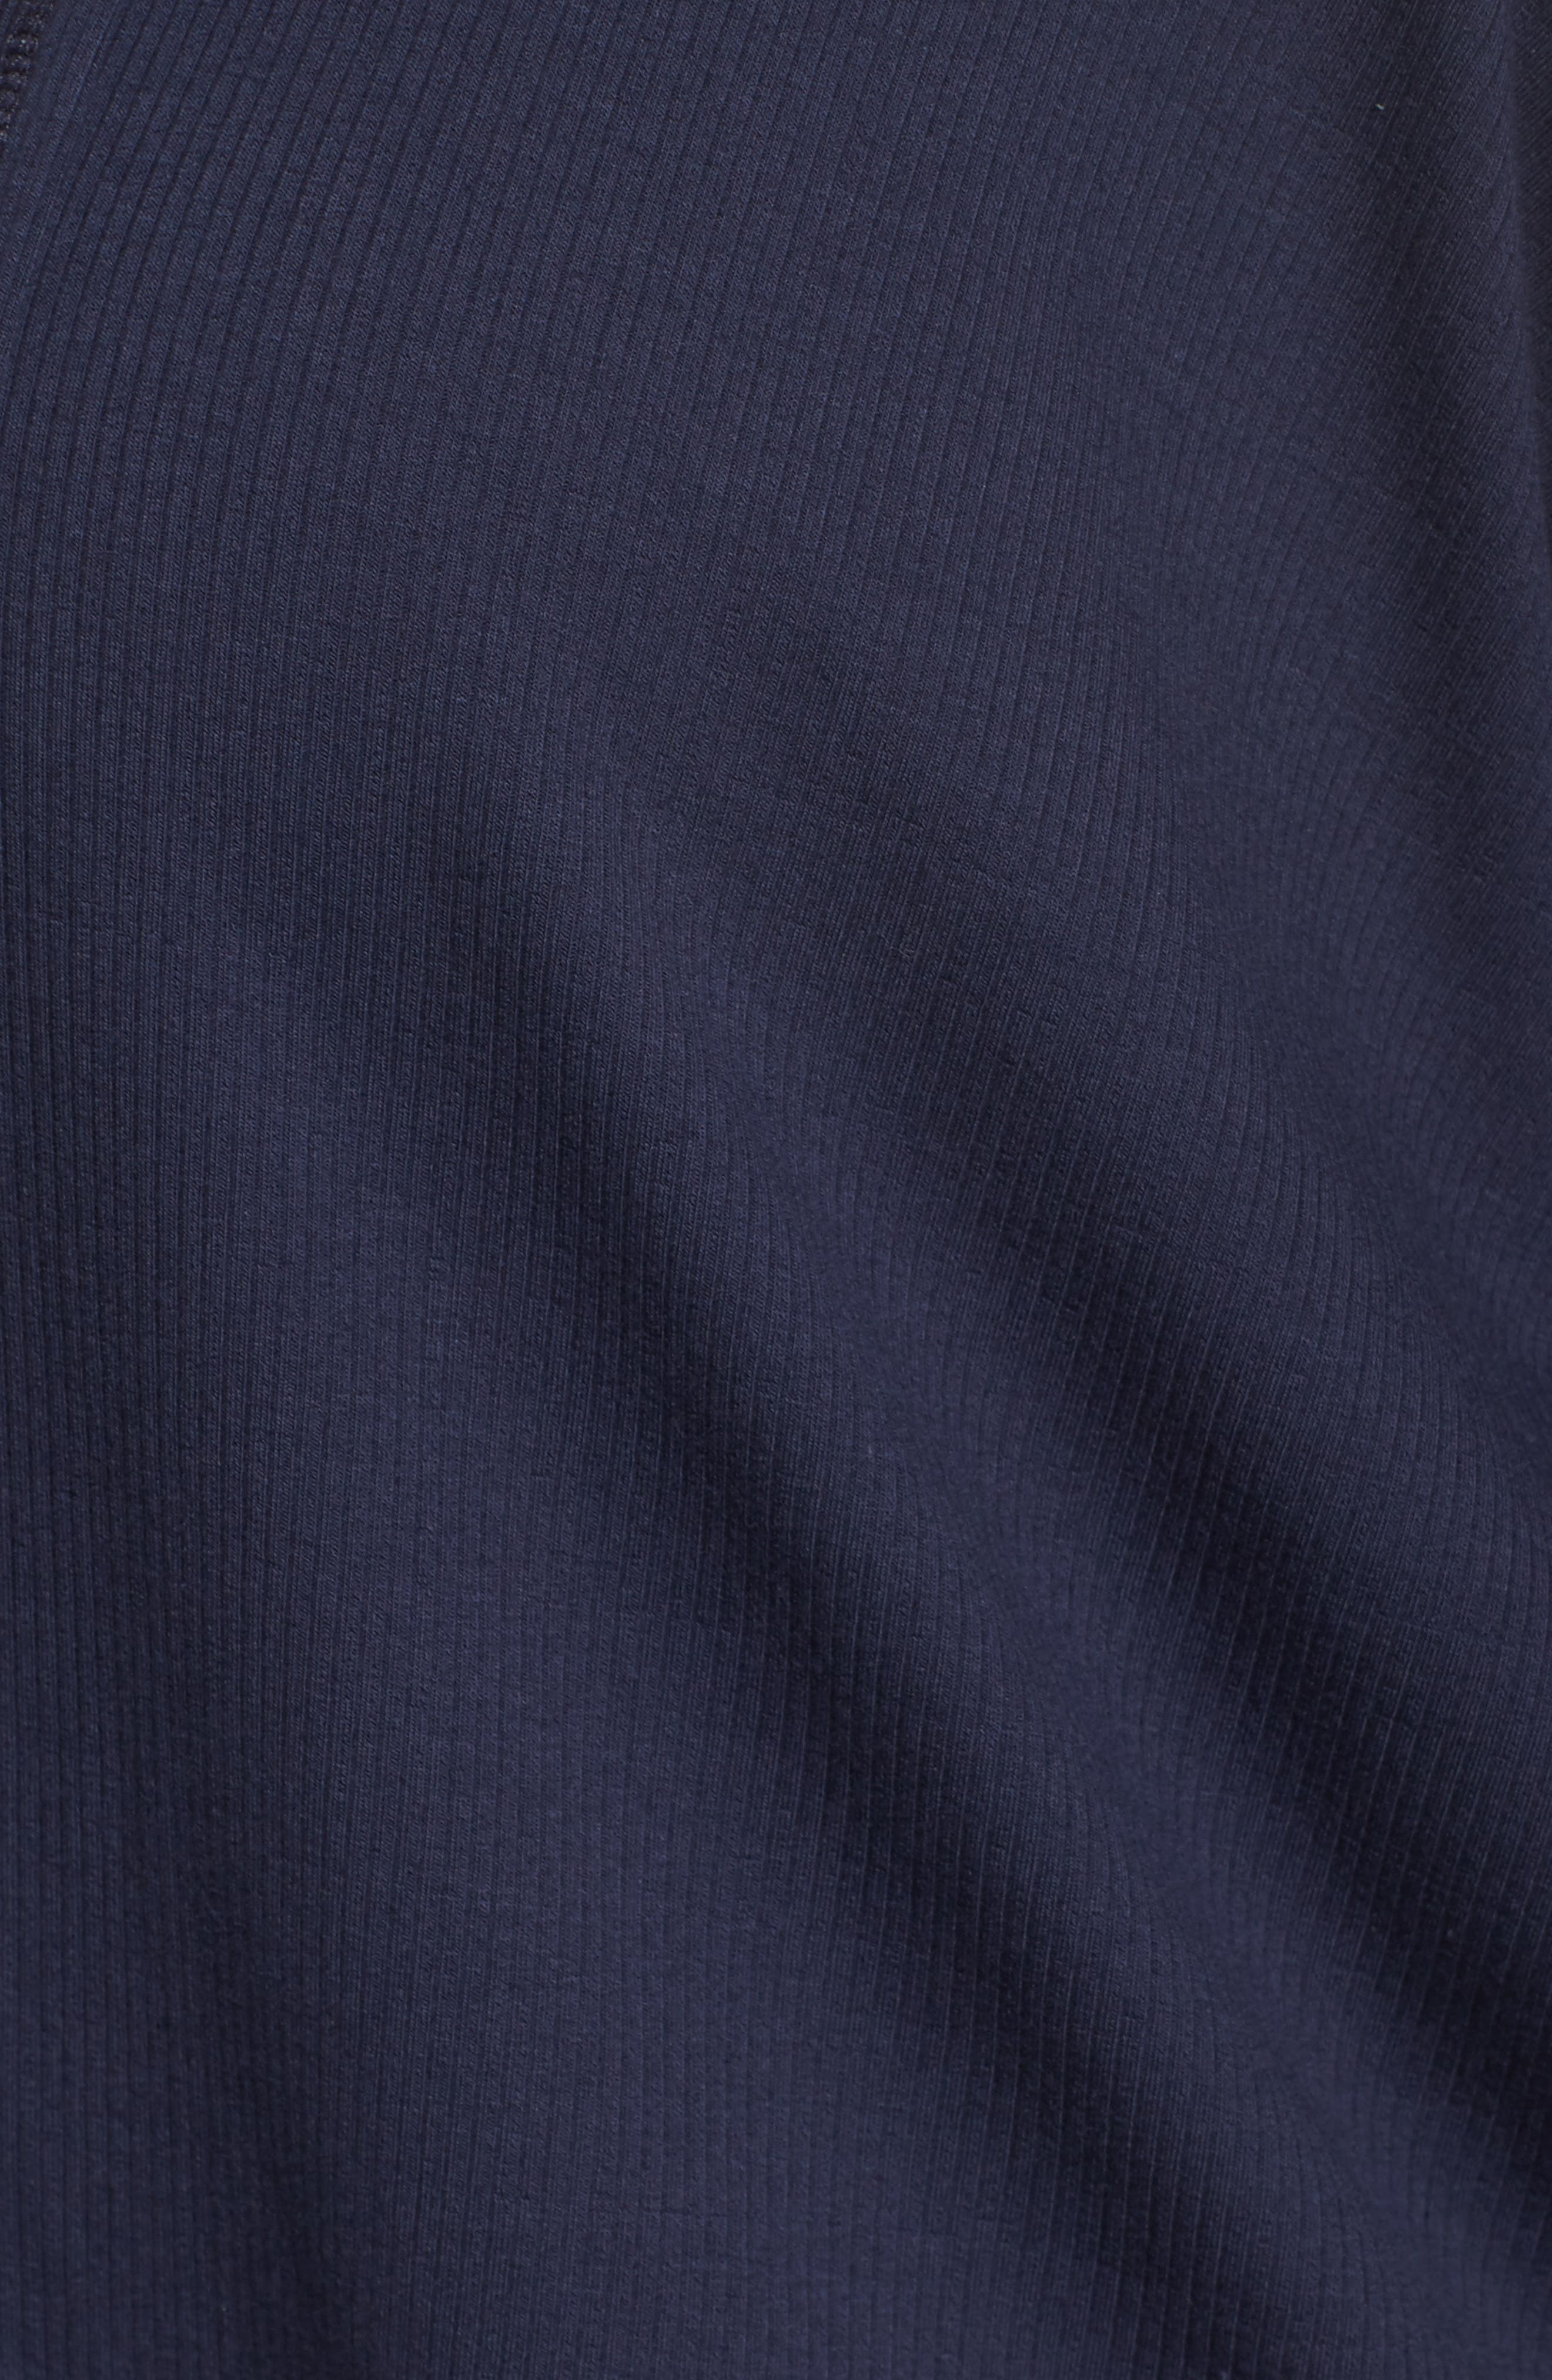 Ribbed Cocoon Cardigan,                             Alternate thumbnail 5, color,                             Navy Peacoat